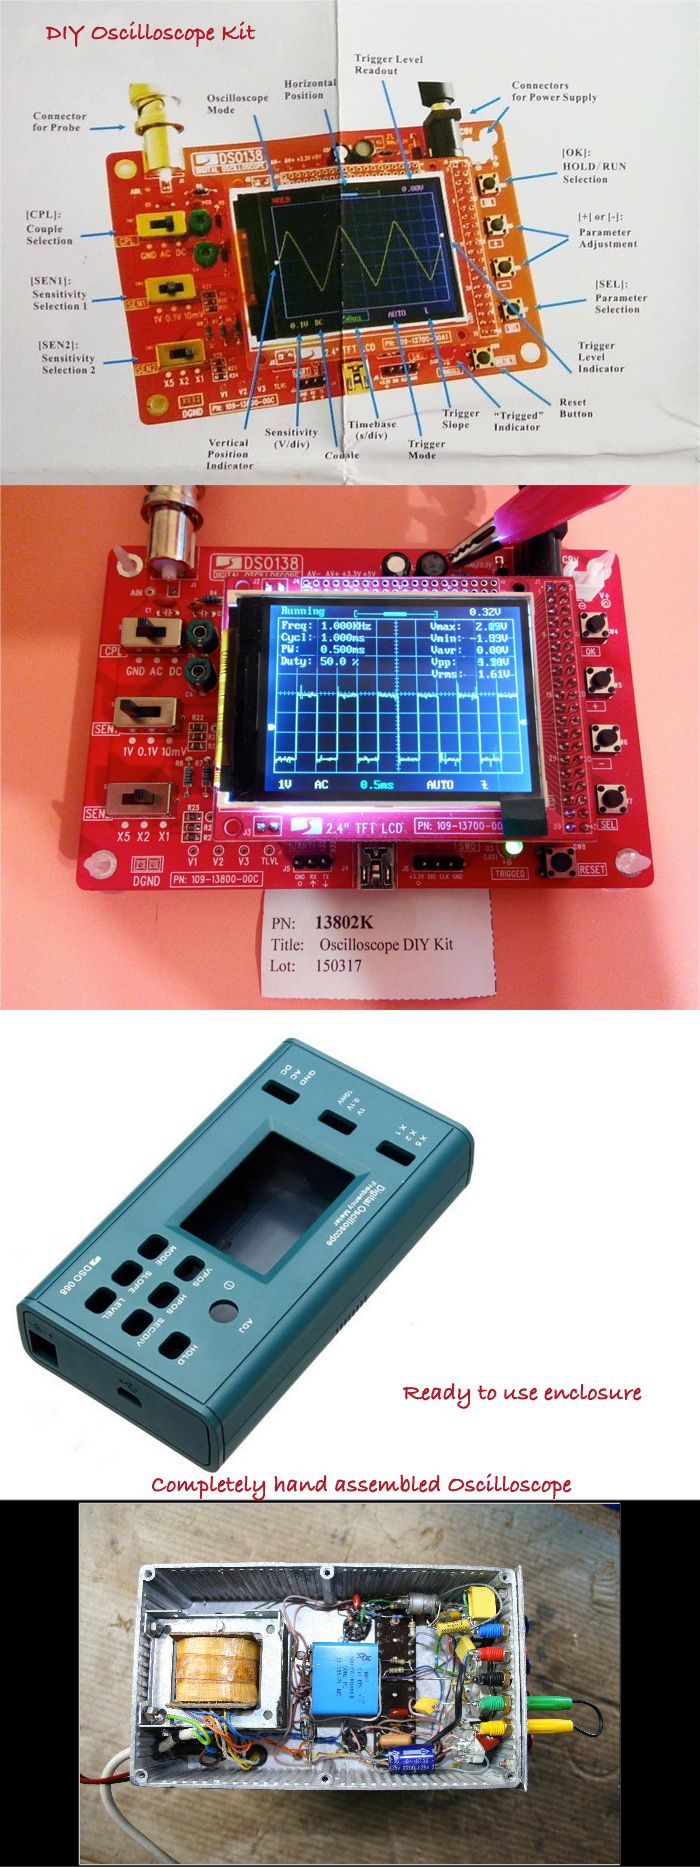 They can be changed to Millivoltmeter, data loggers, and so on. Maximum real-time sampling rate of these kits are 1Msps and they can not tolerate more than 12V DC.